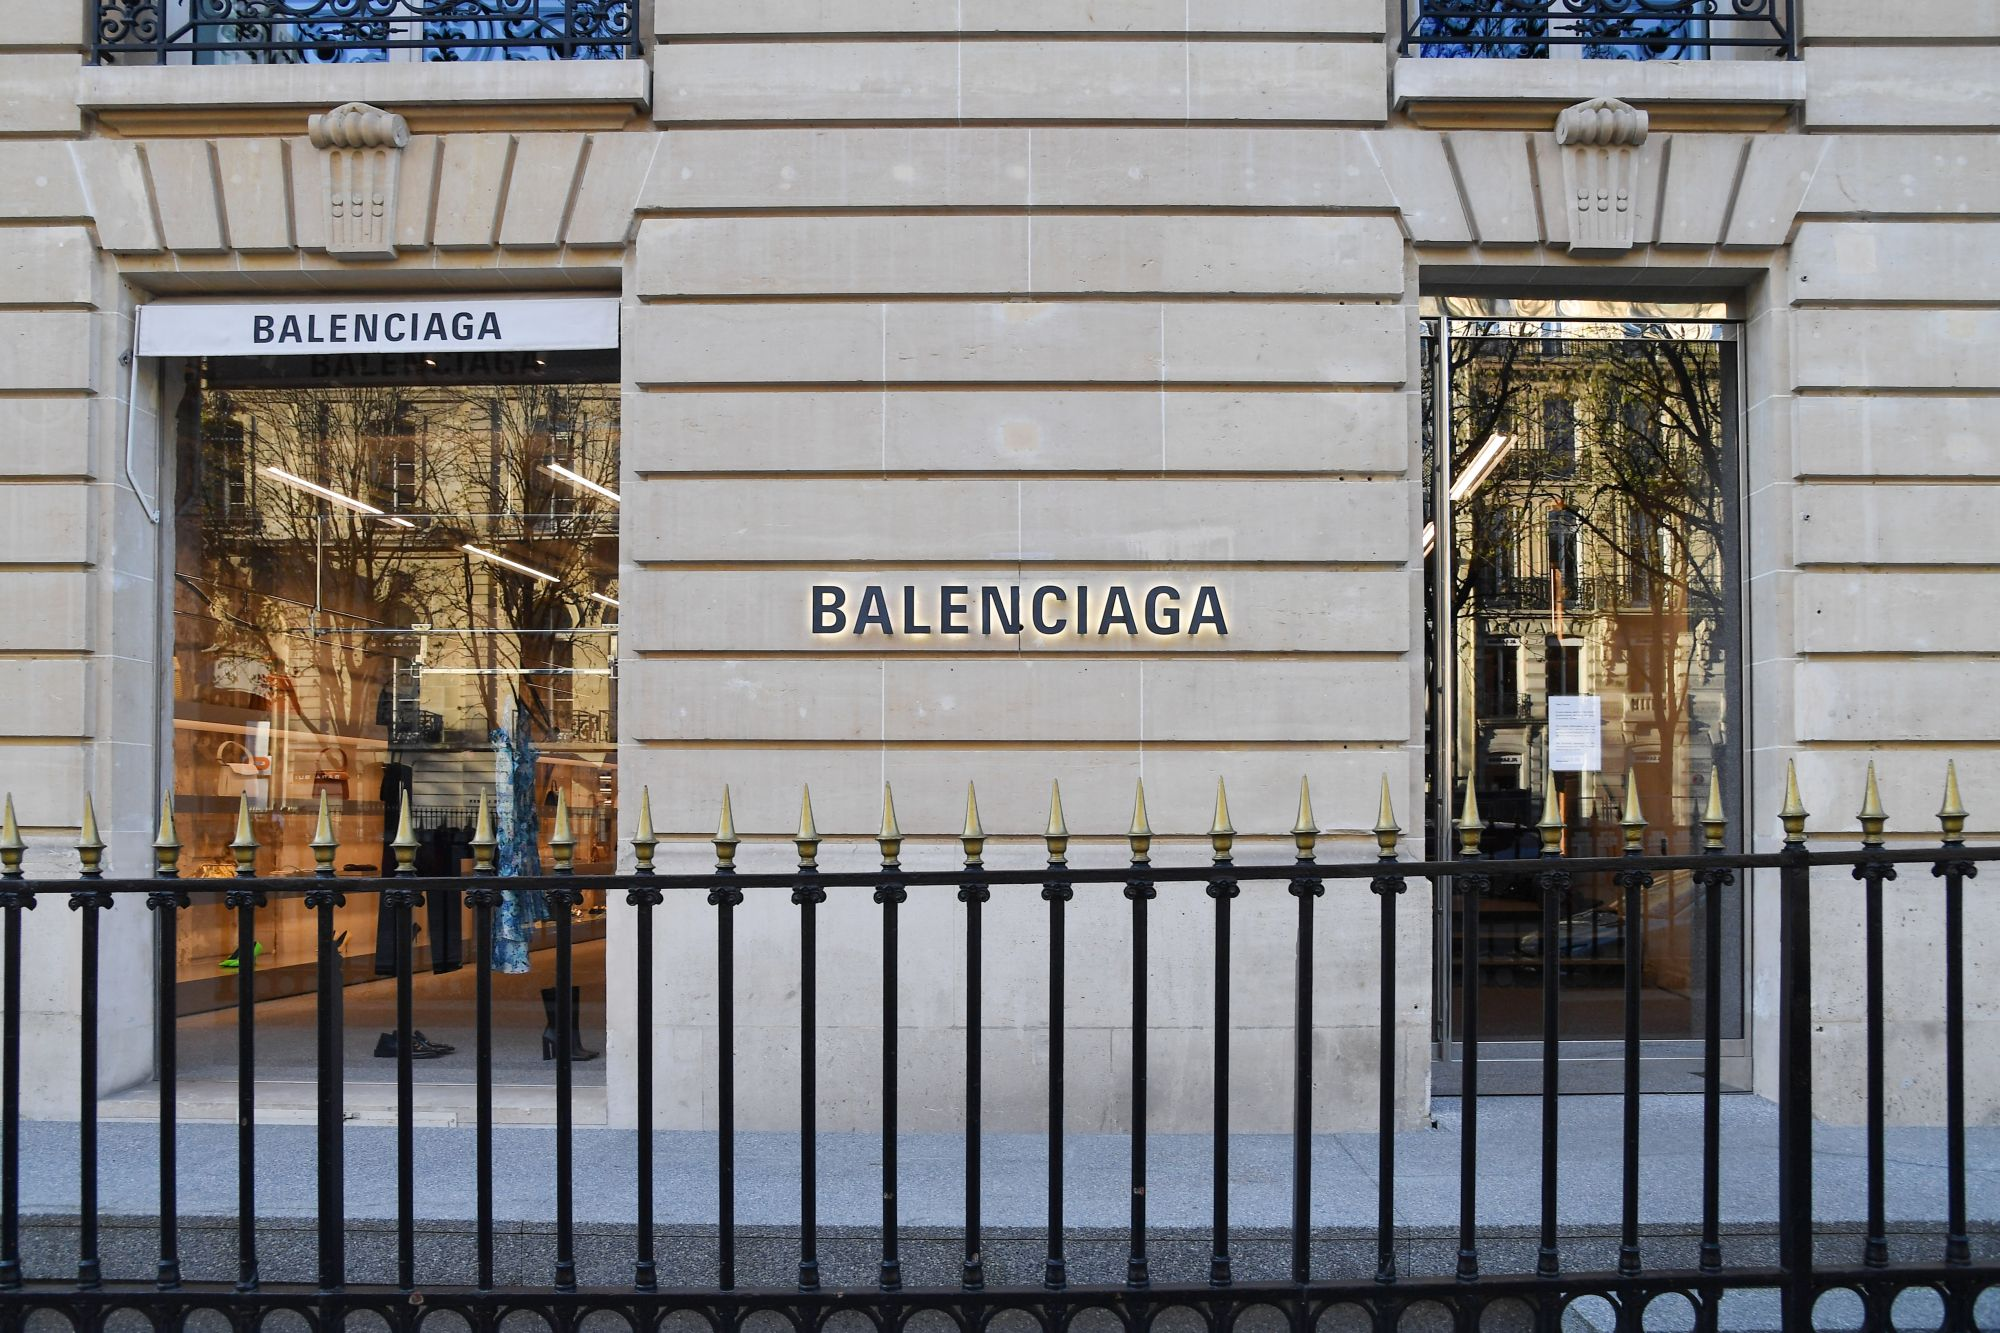 PARIS, FRANCE - MARCH 15: A closed Balenciaga shop is seen at Avenue Montaigne as France faces the coronavirus pandemy on March 15, 2020 in Paris, France. French Prime Minister Edouard Philippe announced that France must shut shops, restaurants and entertainment facilities to slow down the spread of the coronavirus. Due to a sharp increase in the number of cases of the COVID-19 virus declared in Paris and throughout France, several sporting, cultural and festive events have been postponed or cancelled. The